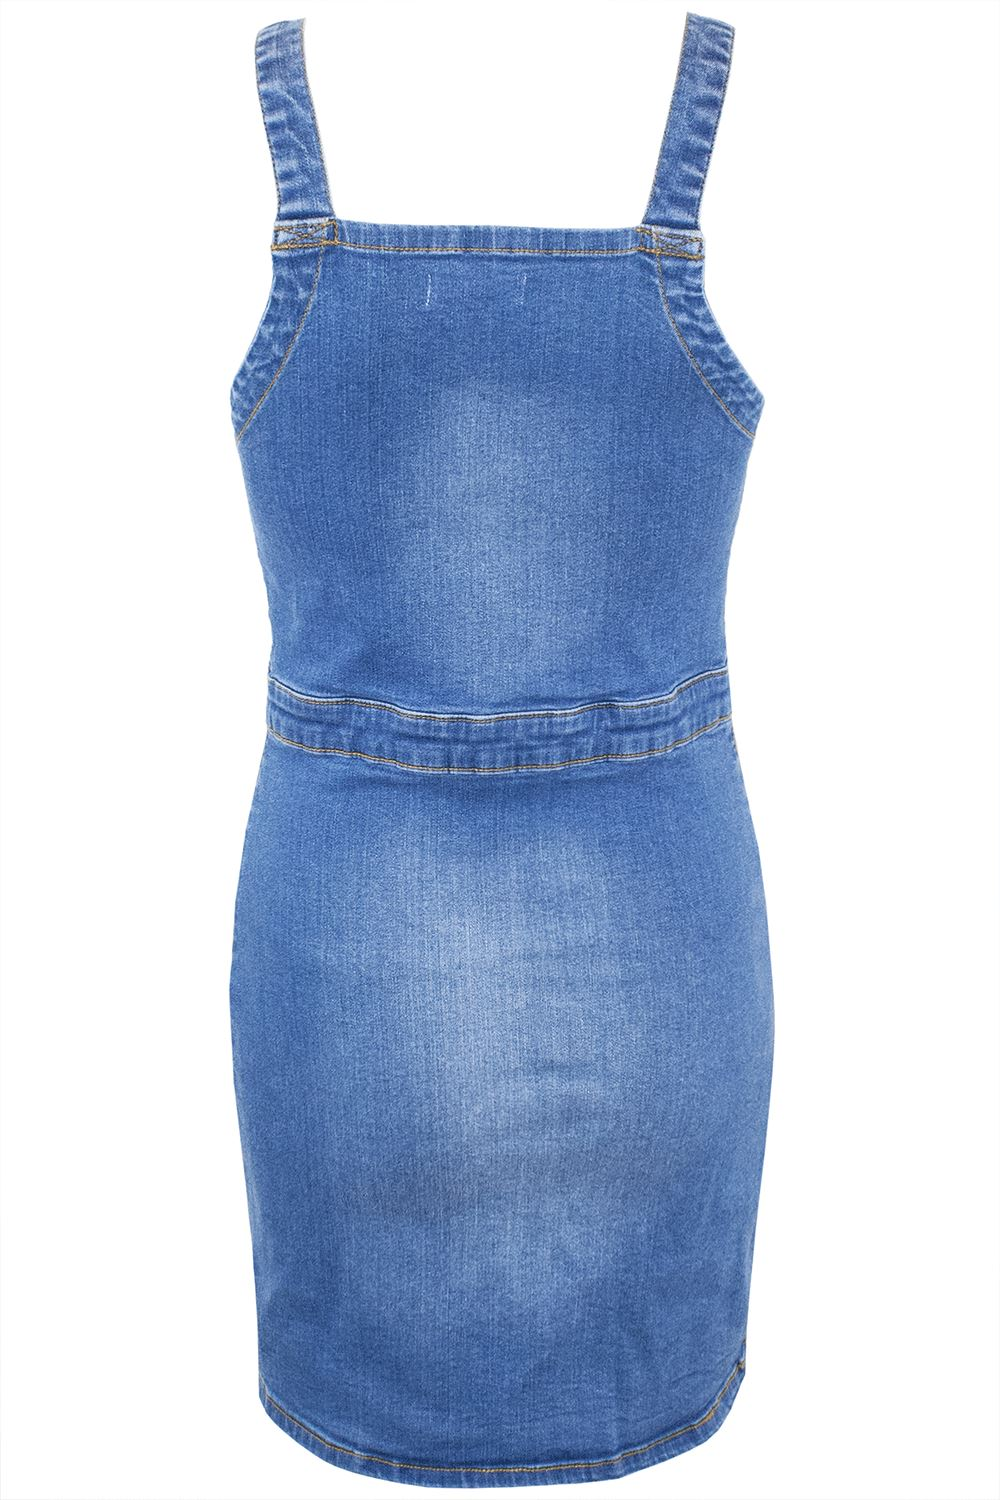 Ladies Womens Pinafore Denim Overall Faded Pockets Strap Dungaree Mini Dresses